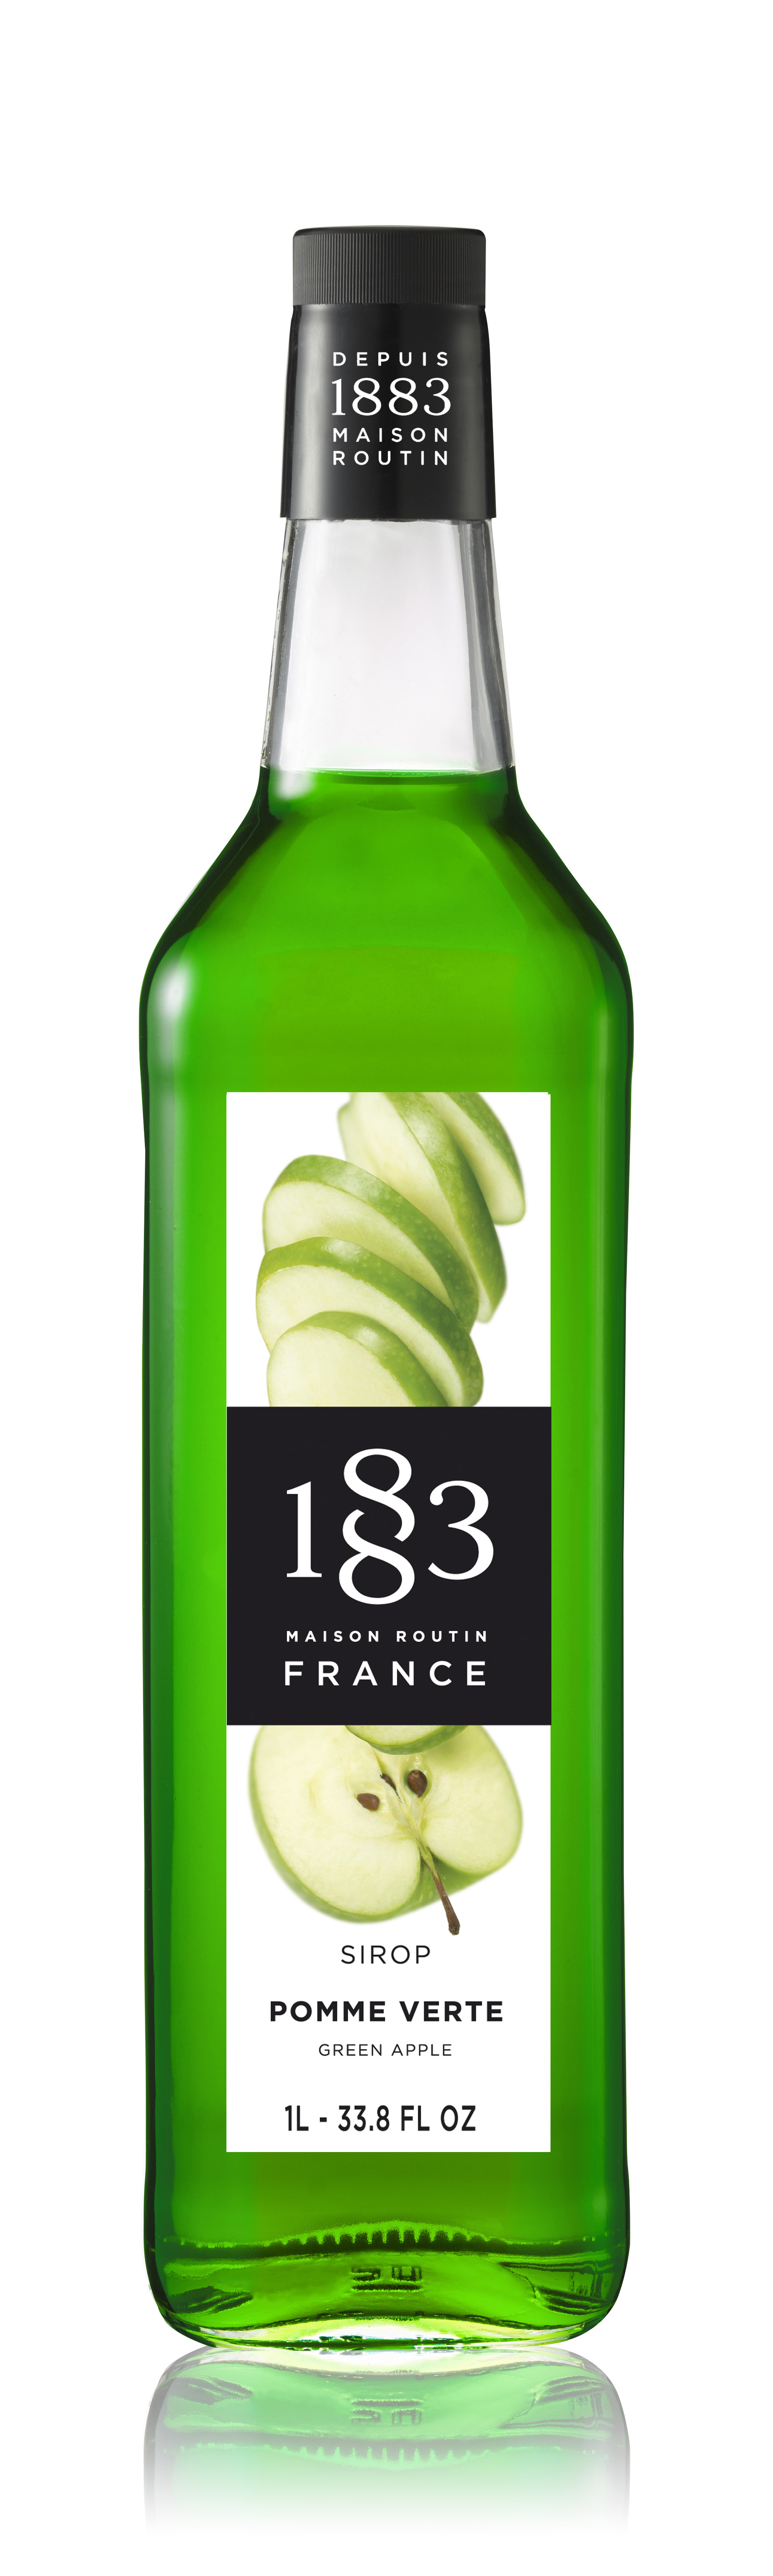 1883 Syrup Green Apple 1L Glass Bottle